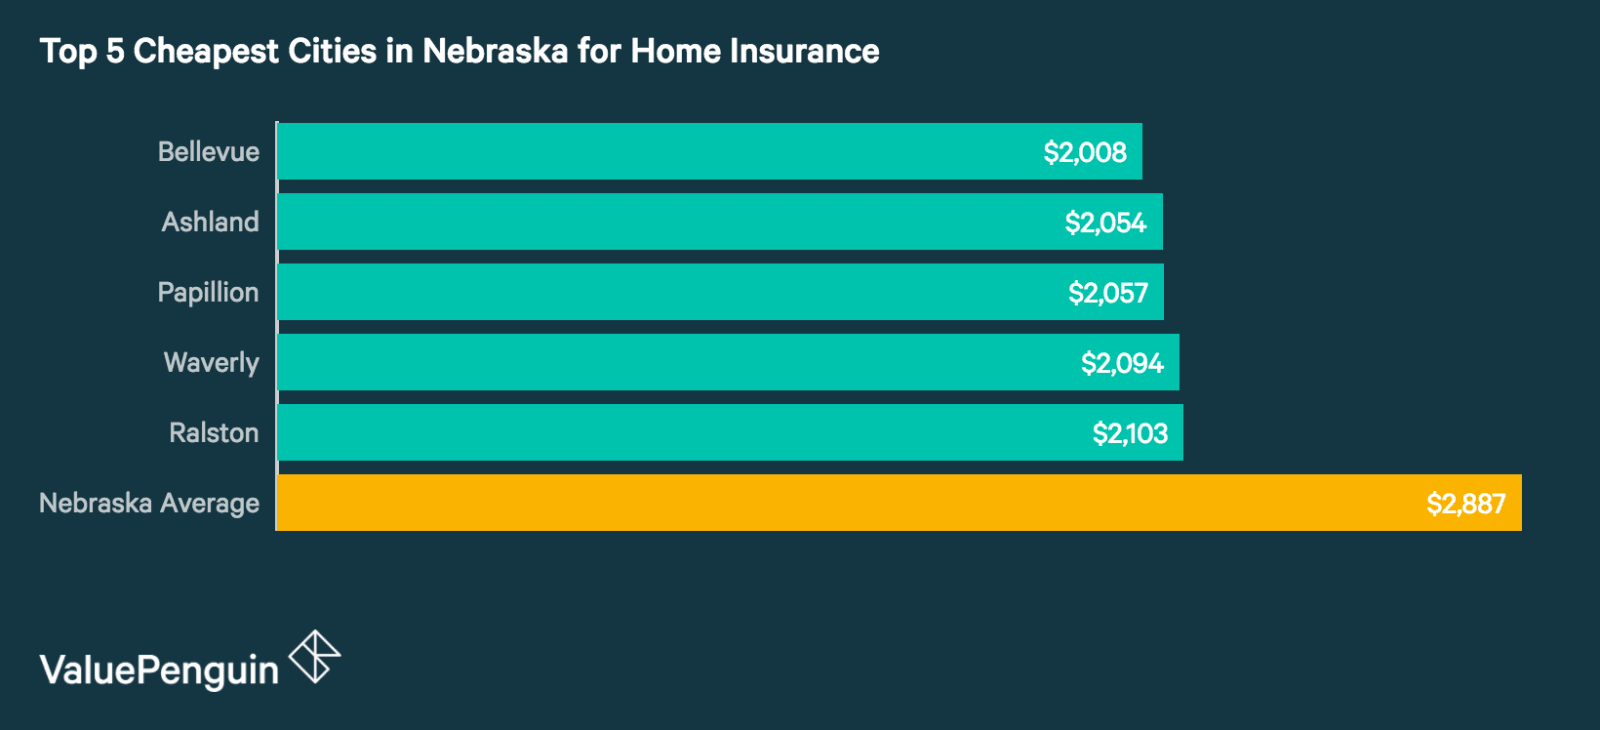 Top 5 Cheapest Cities in Nebraska for Homeowners Insurance